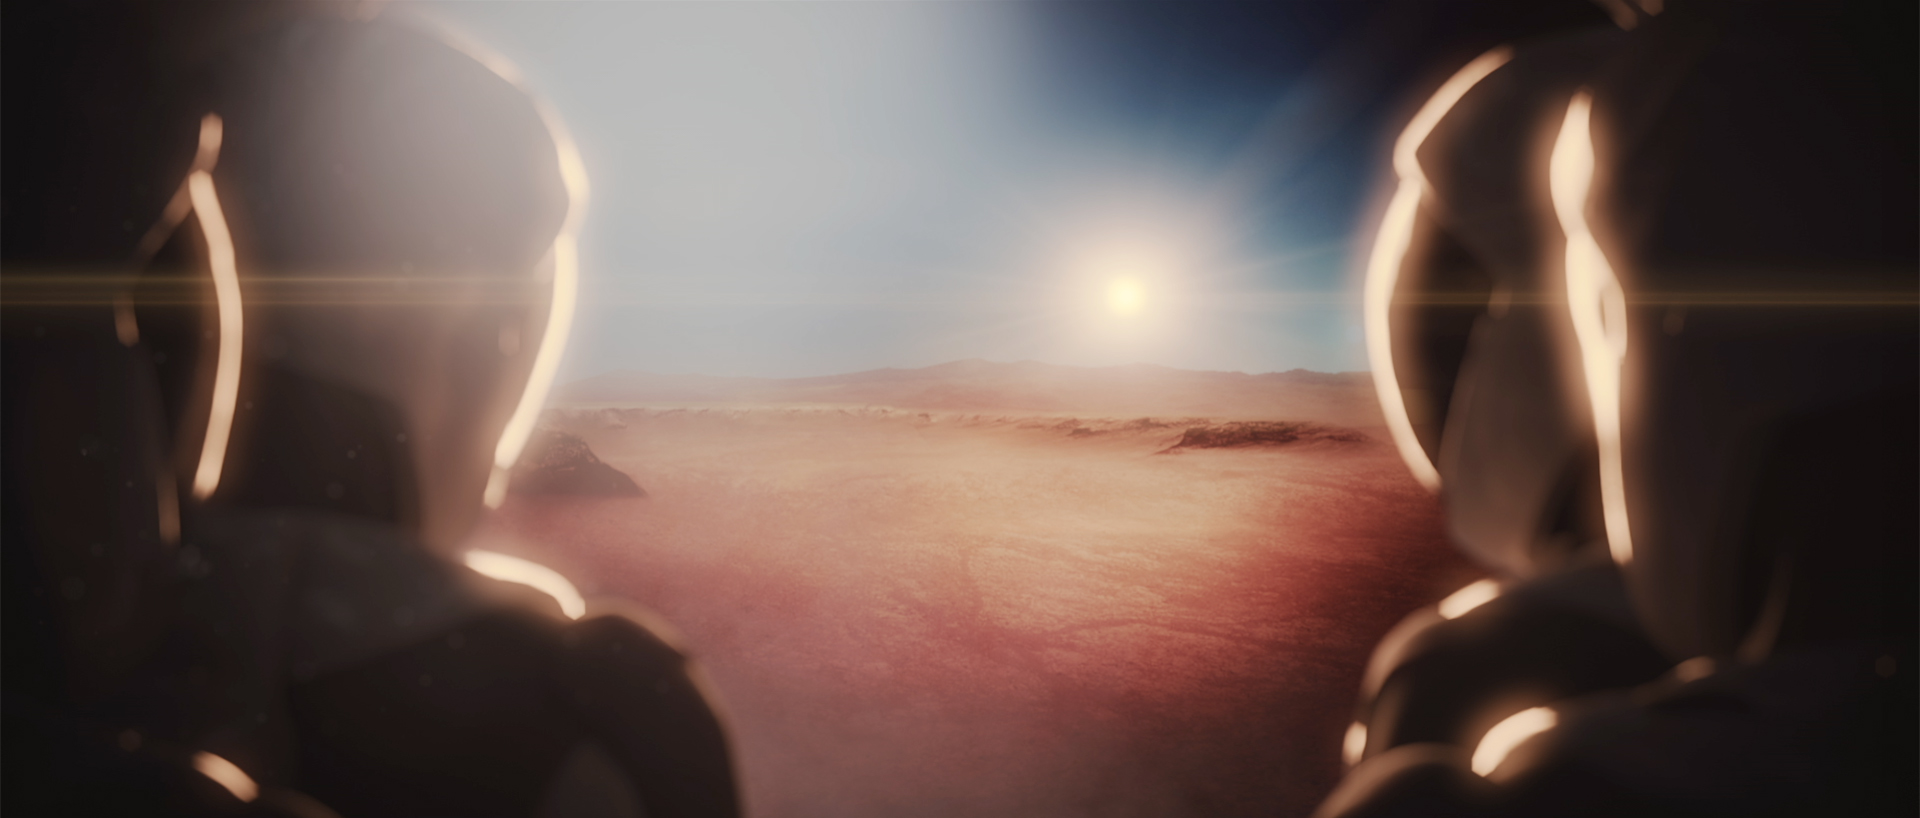 SpaceX Mars Missions: How They Plan to Colonize Mars